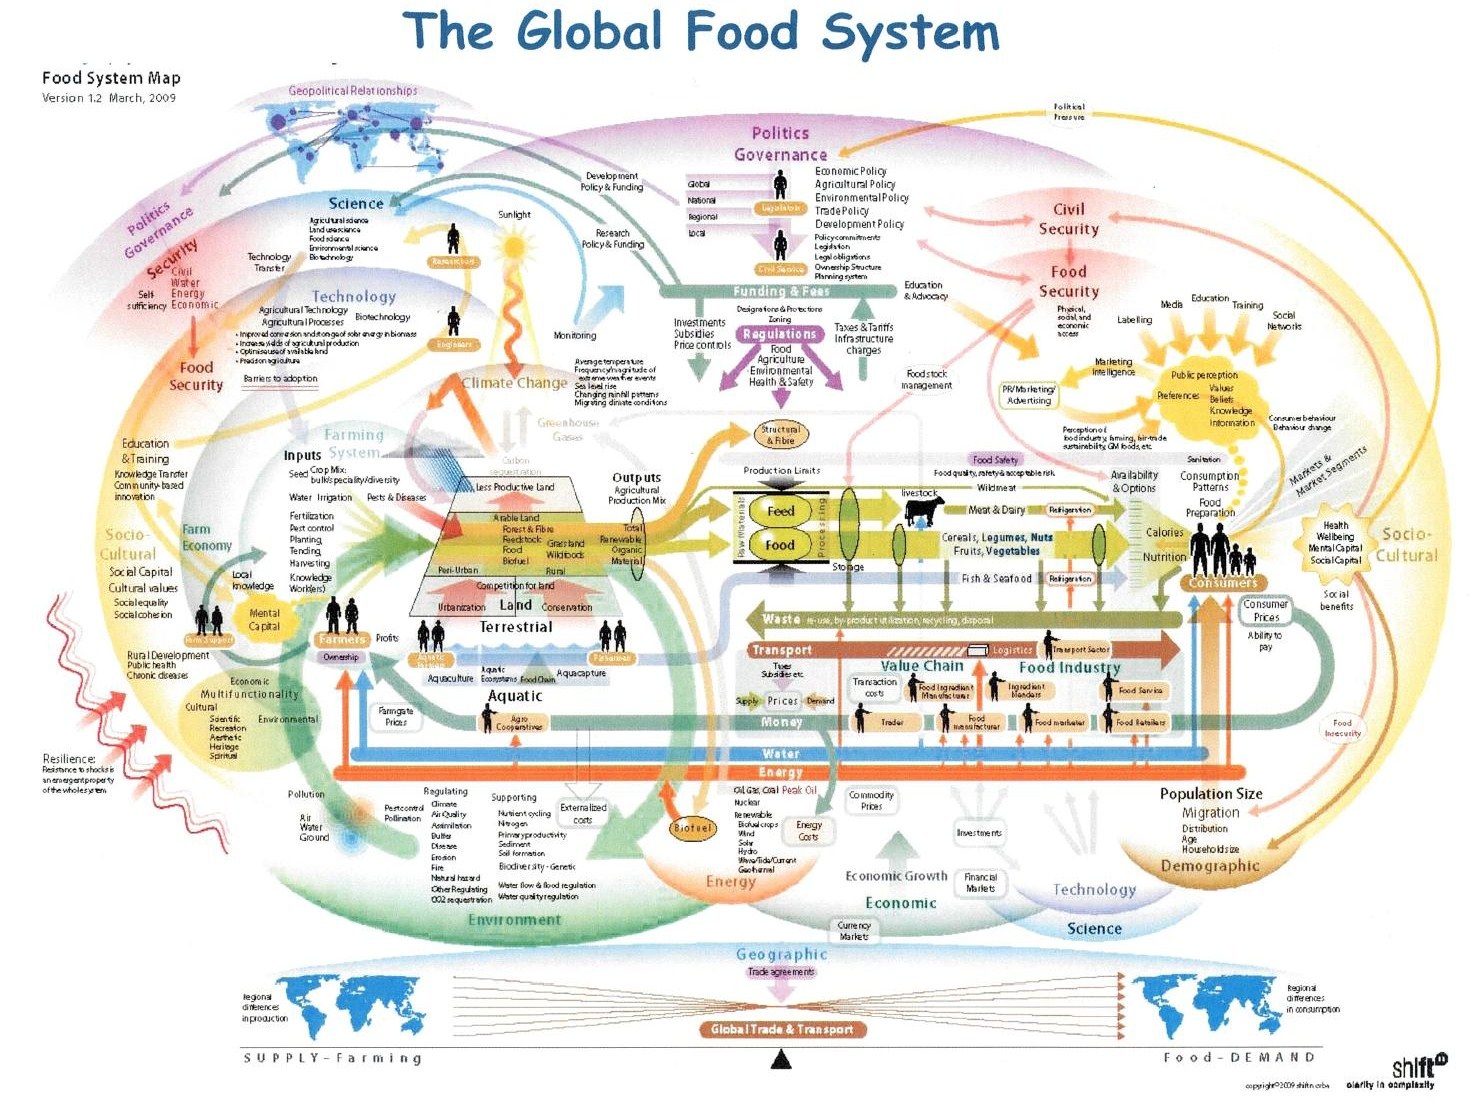 Food Miles and Sustainability